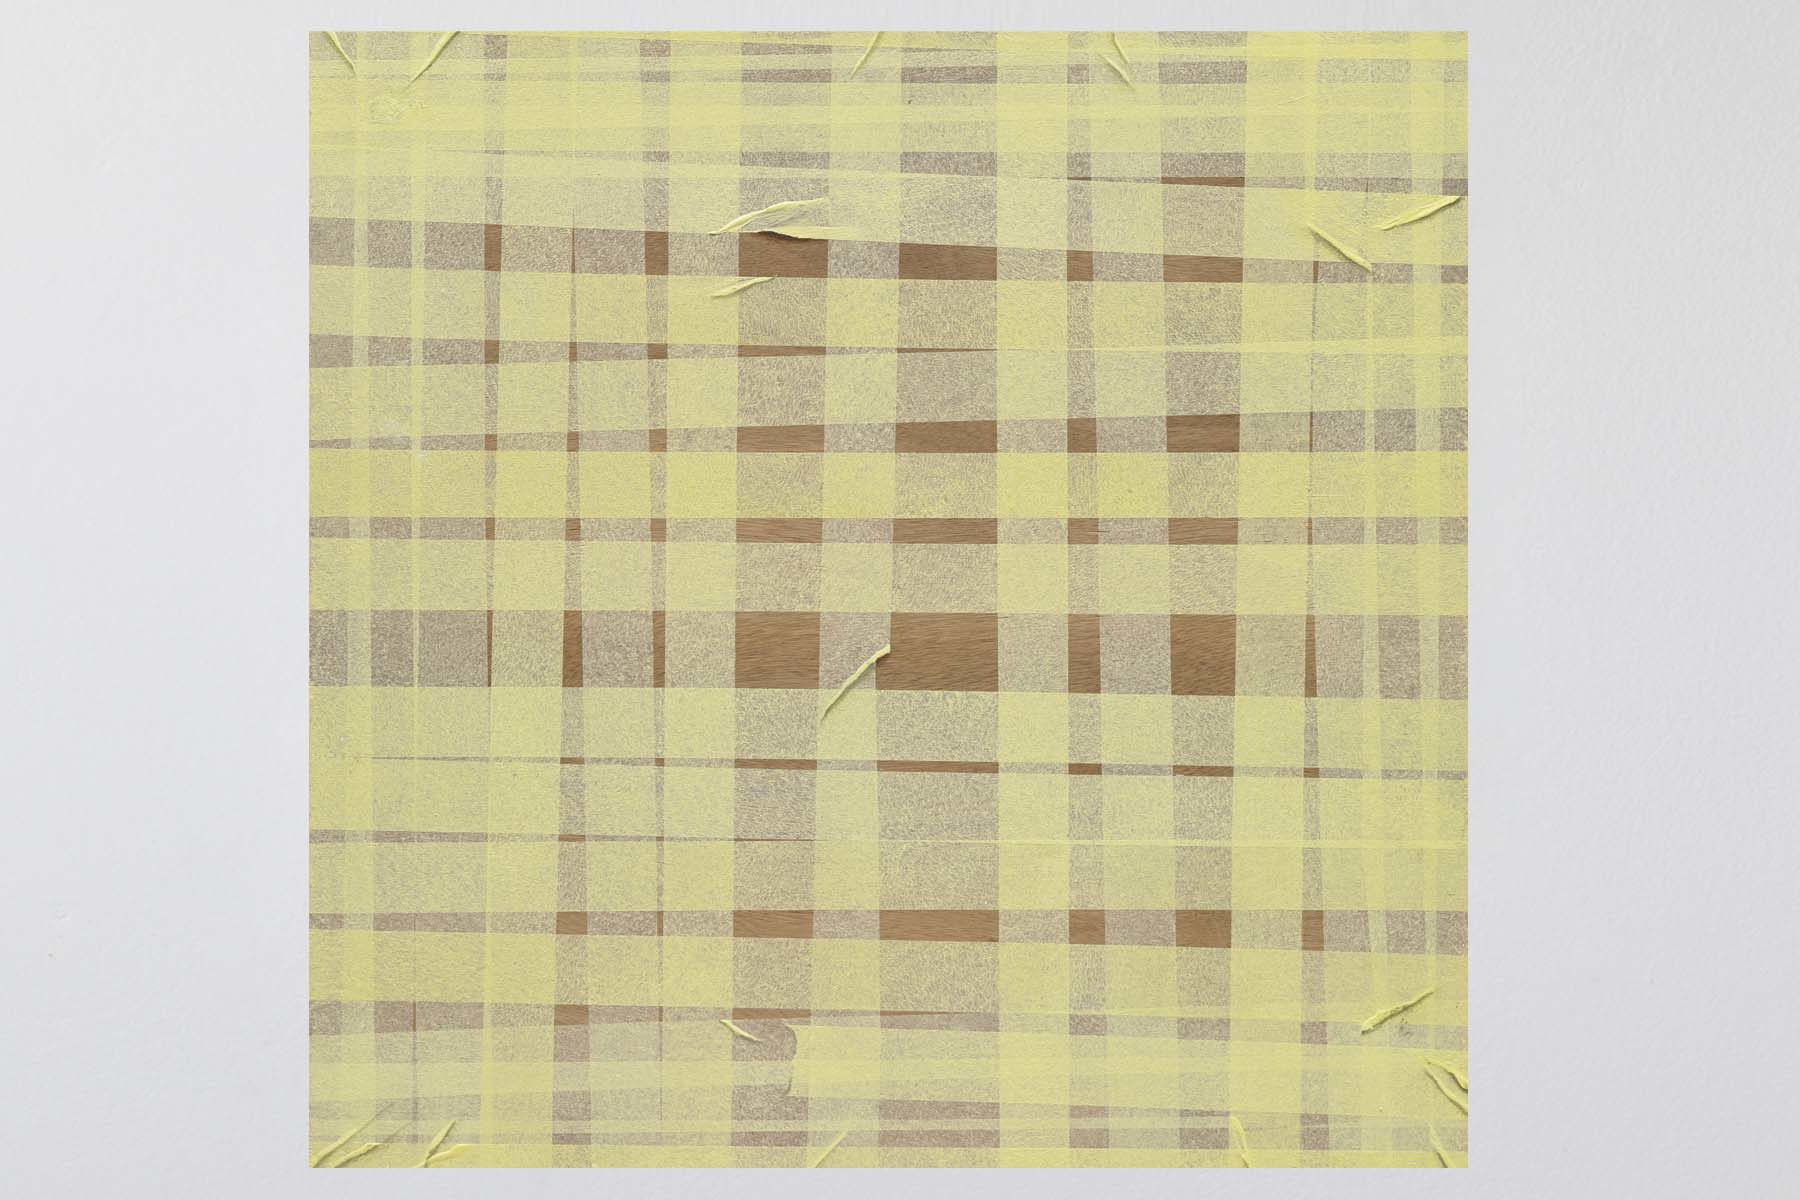 Jochen Mühlenbrink, Grid, 2014, Acrylics on wood, 50 x 50 cm